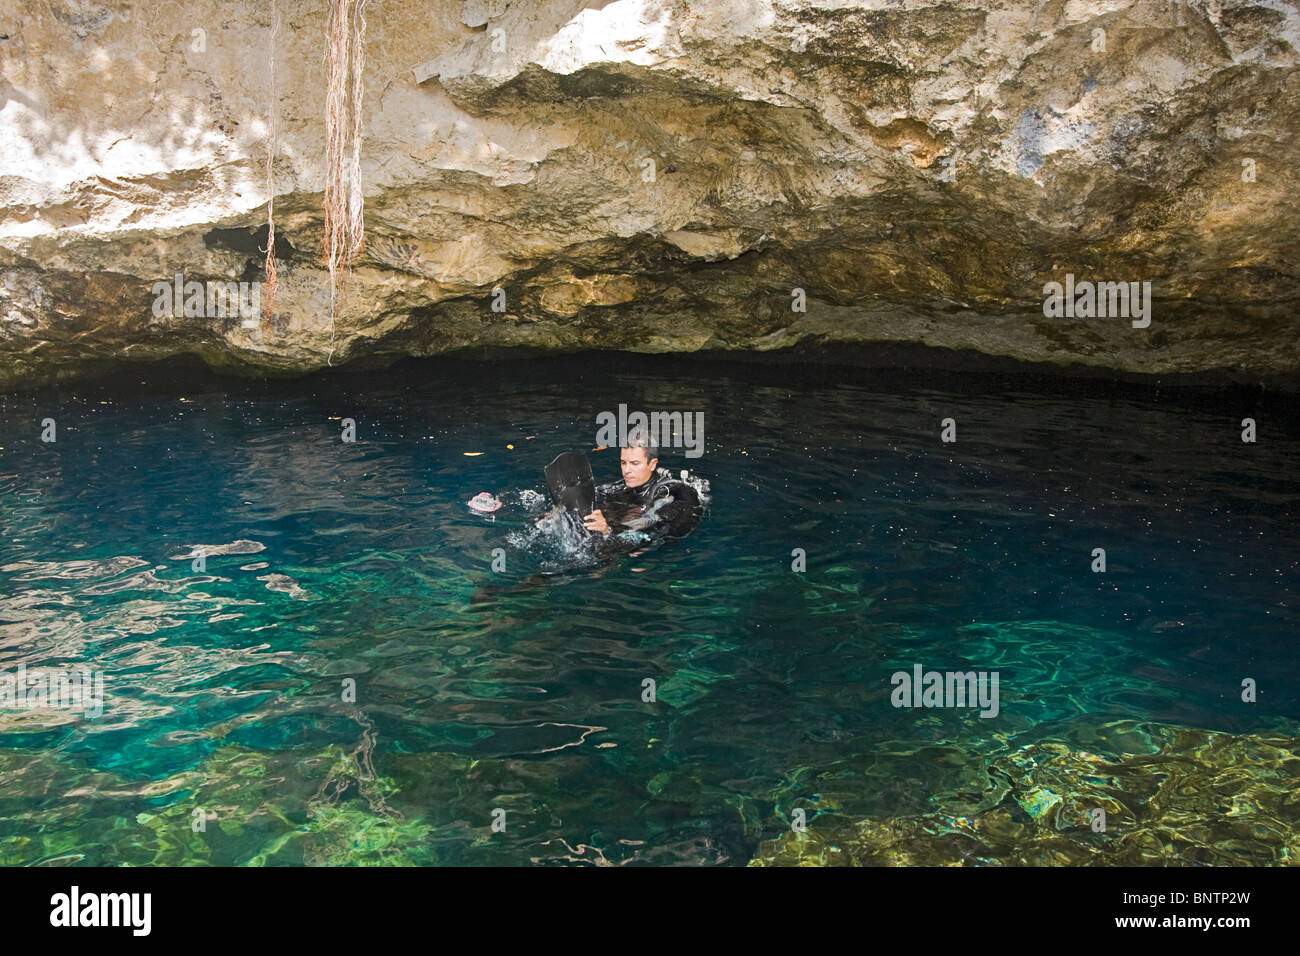 Scuba diving into Chac Mool, one of the cave systems on the Yucatan Peninsula of Mexico. - Stock Image